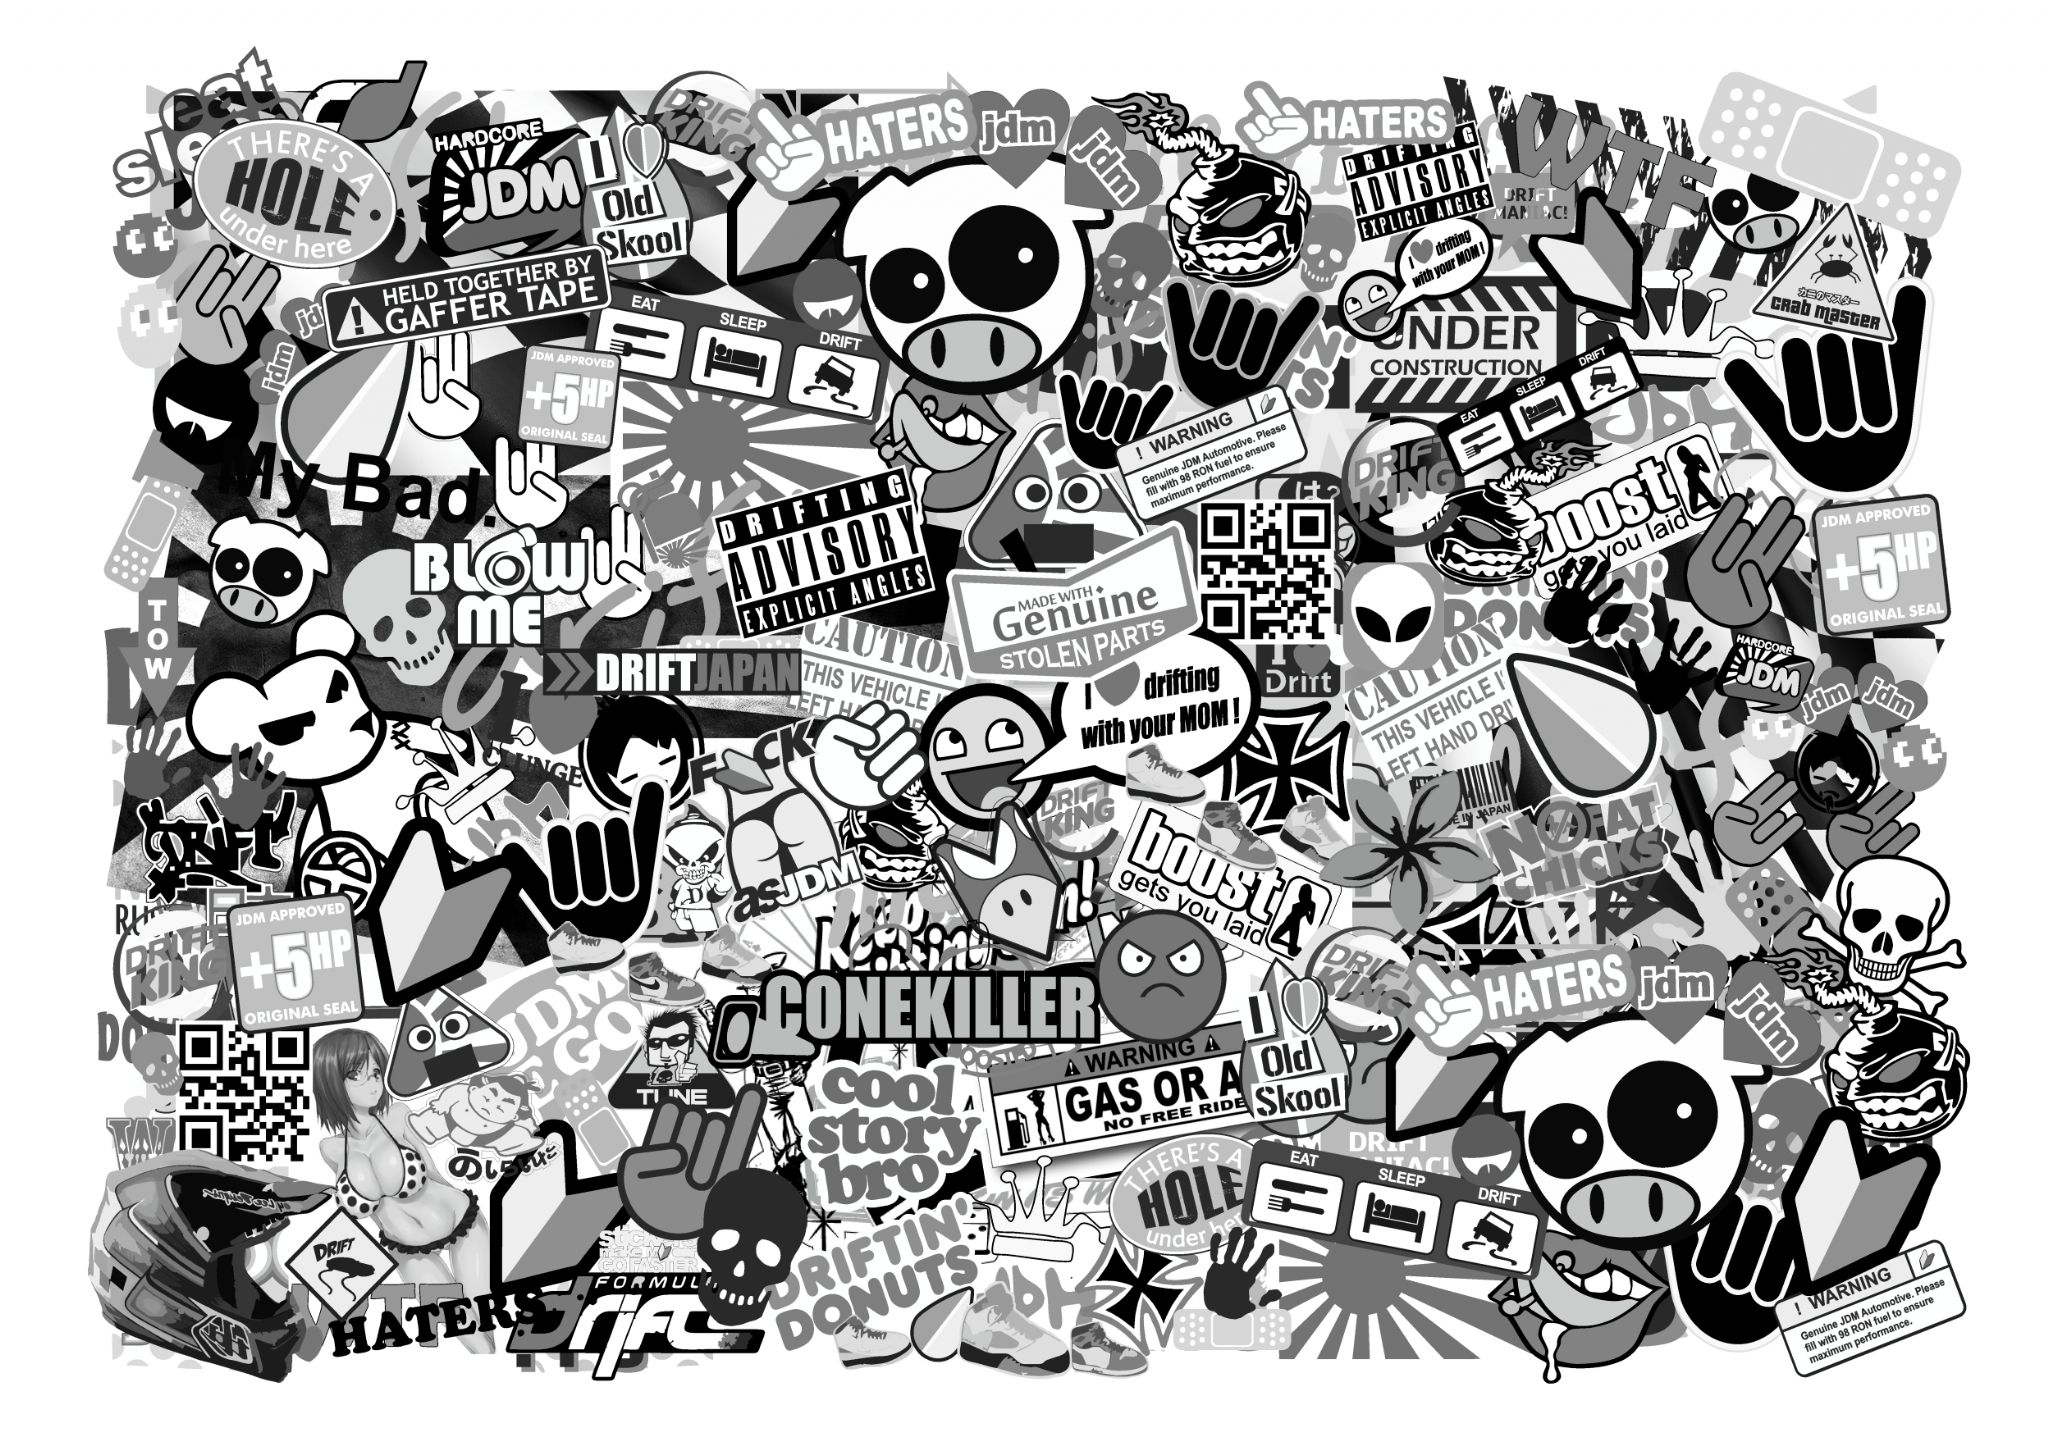 A4 size landscape format with black white jdm drift style icons premium quality vinyl car sticker bombing sheet